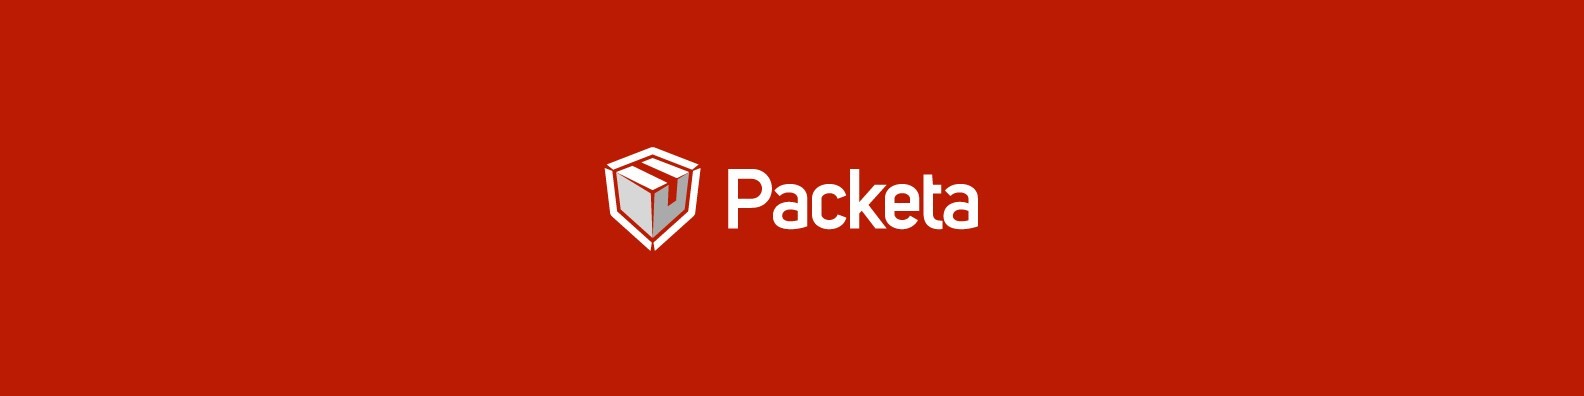 Blog Packeta